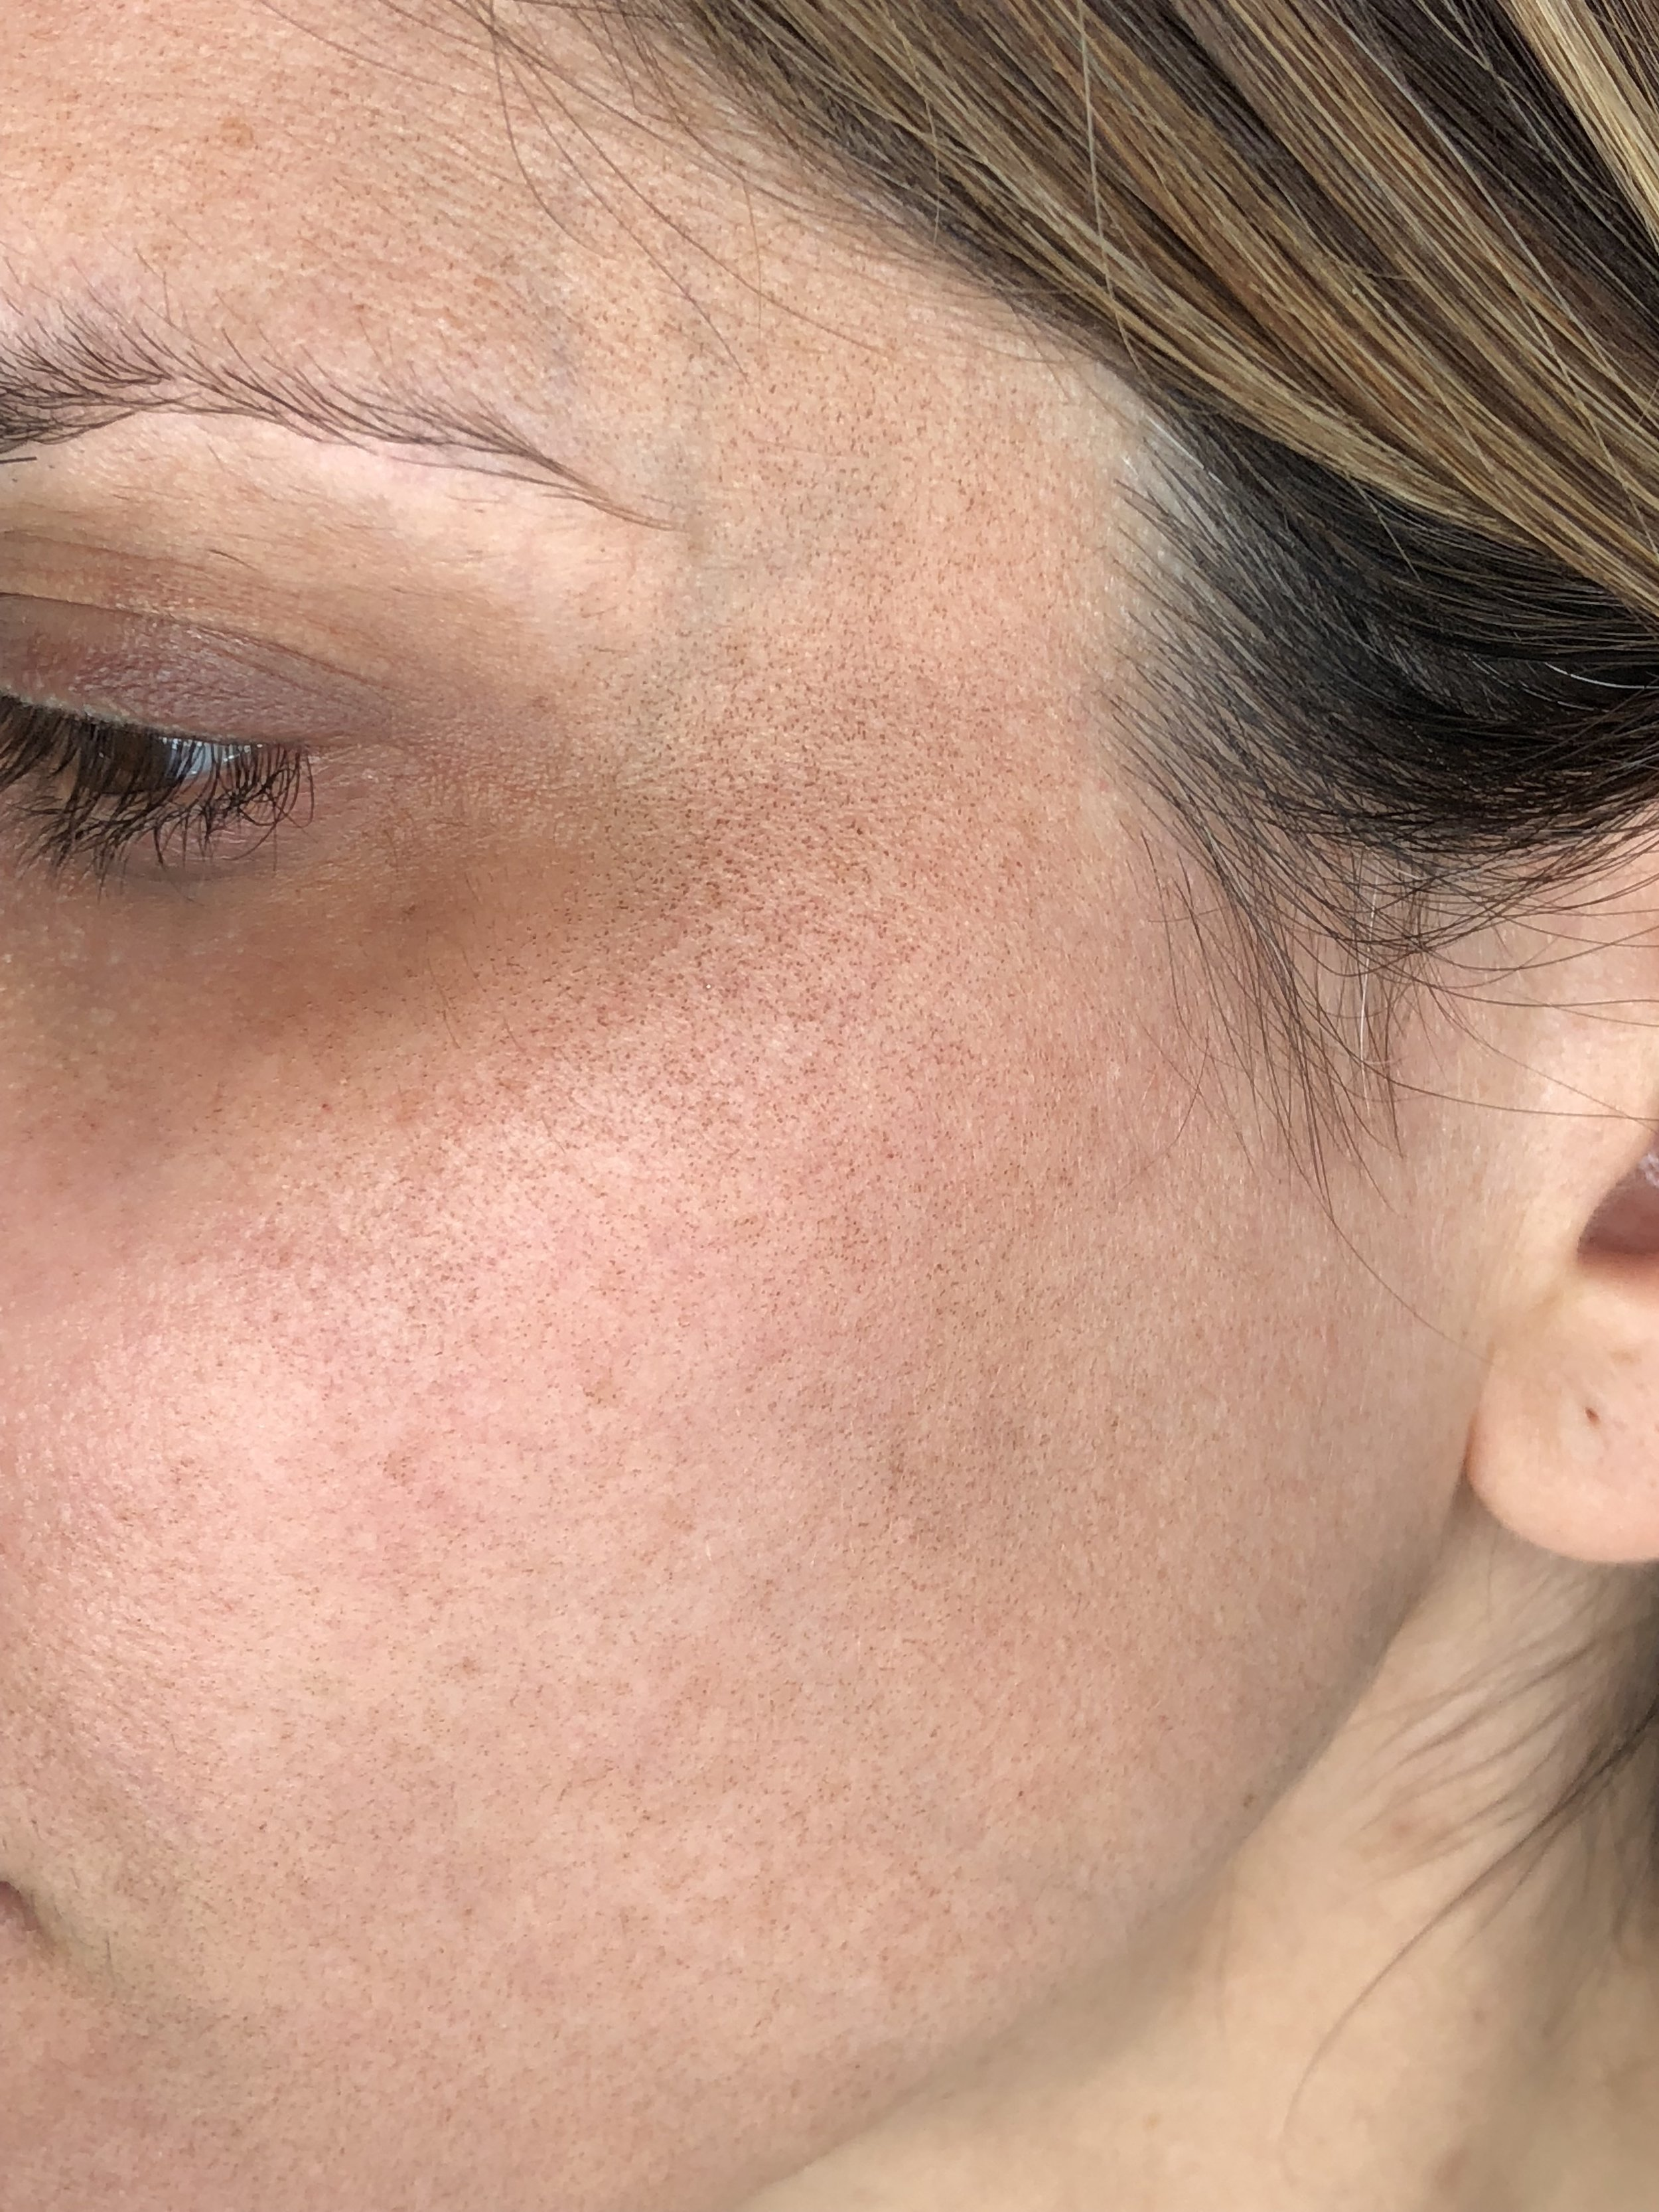 Up close you can see these tiny dark dots. But from a distance, my face just looked tan.